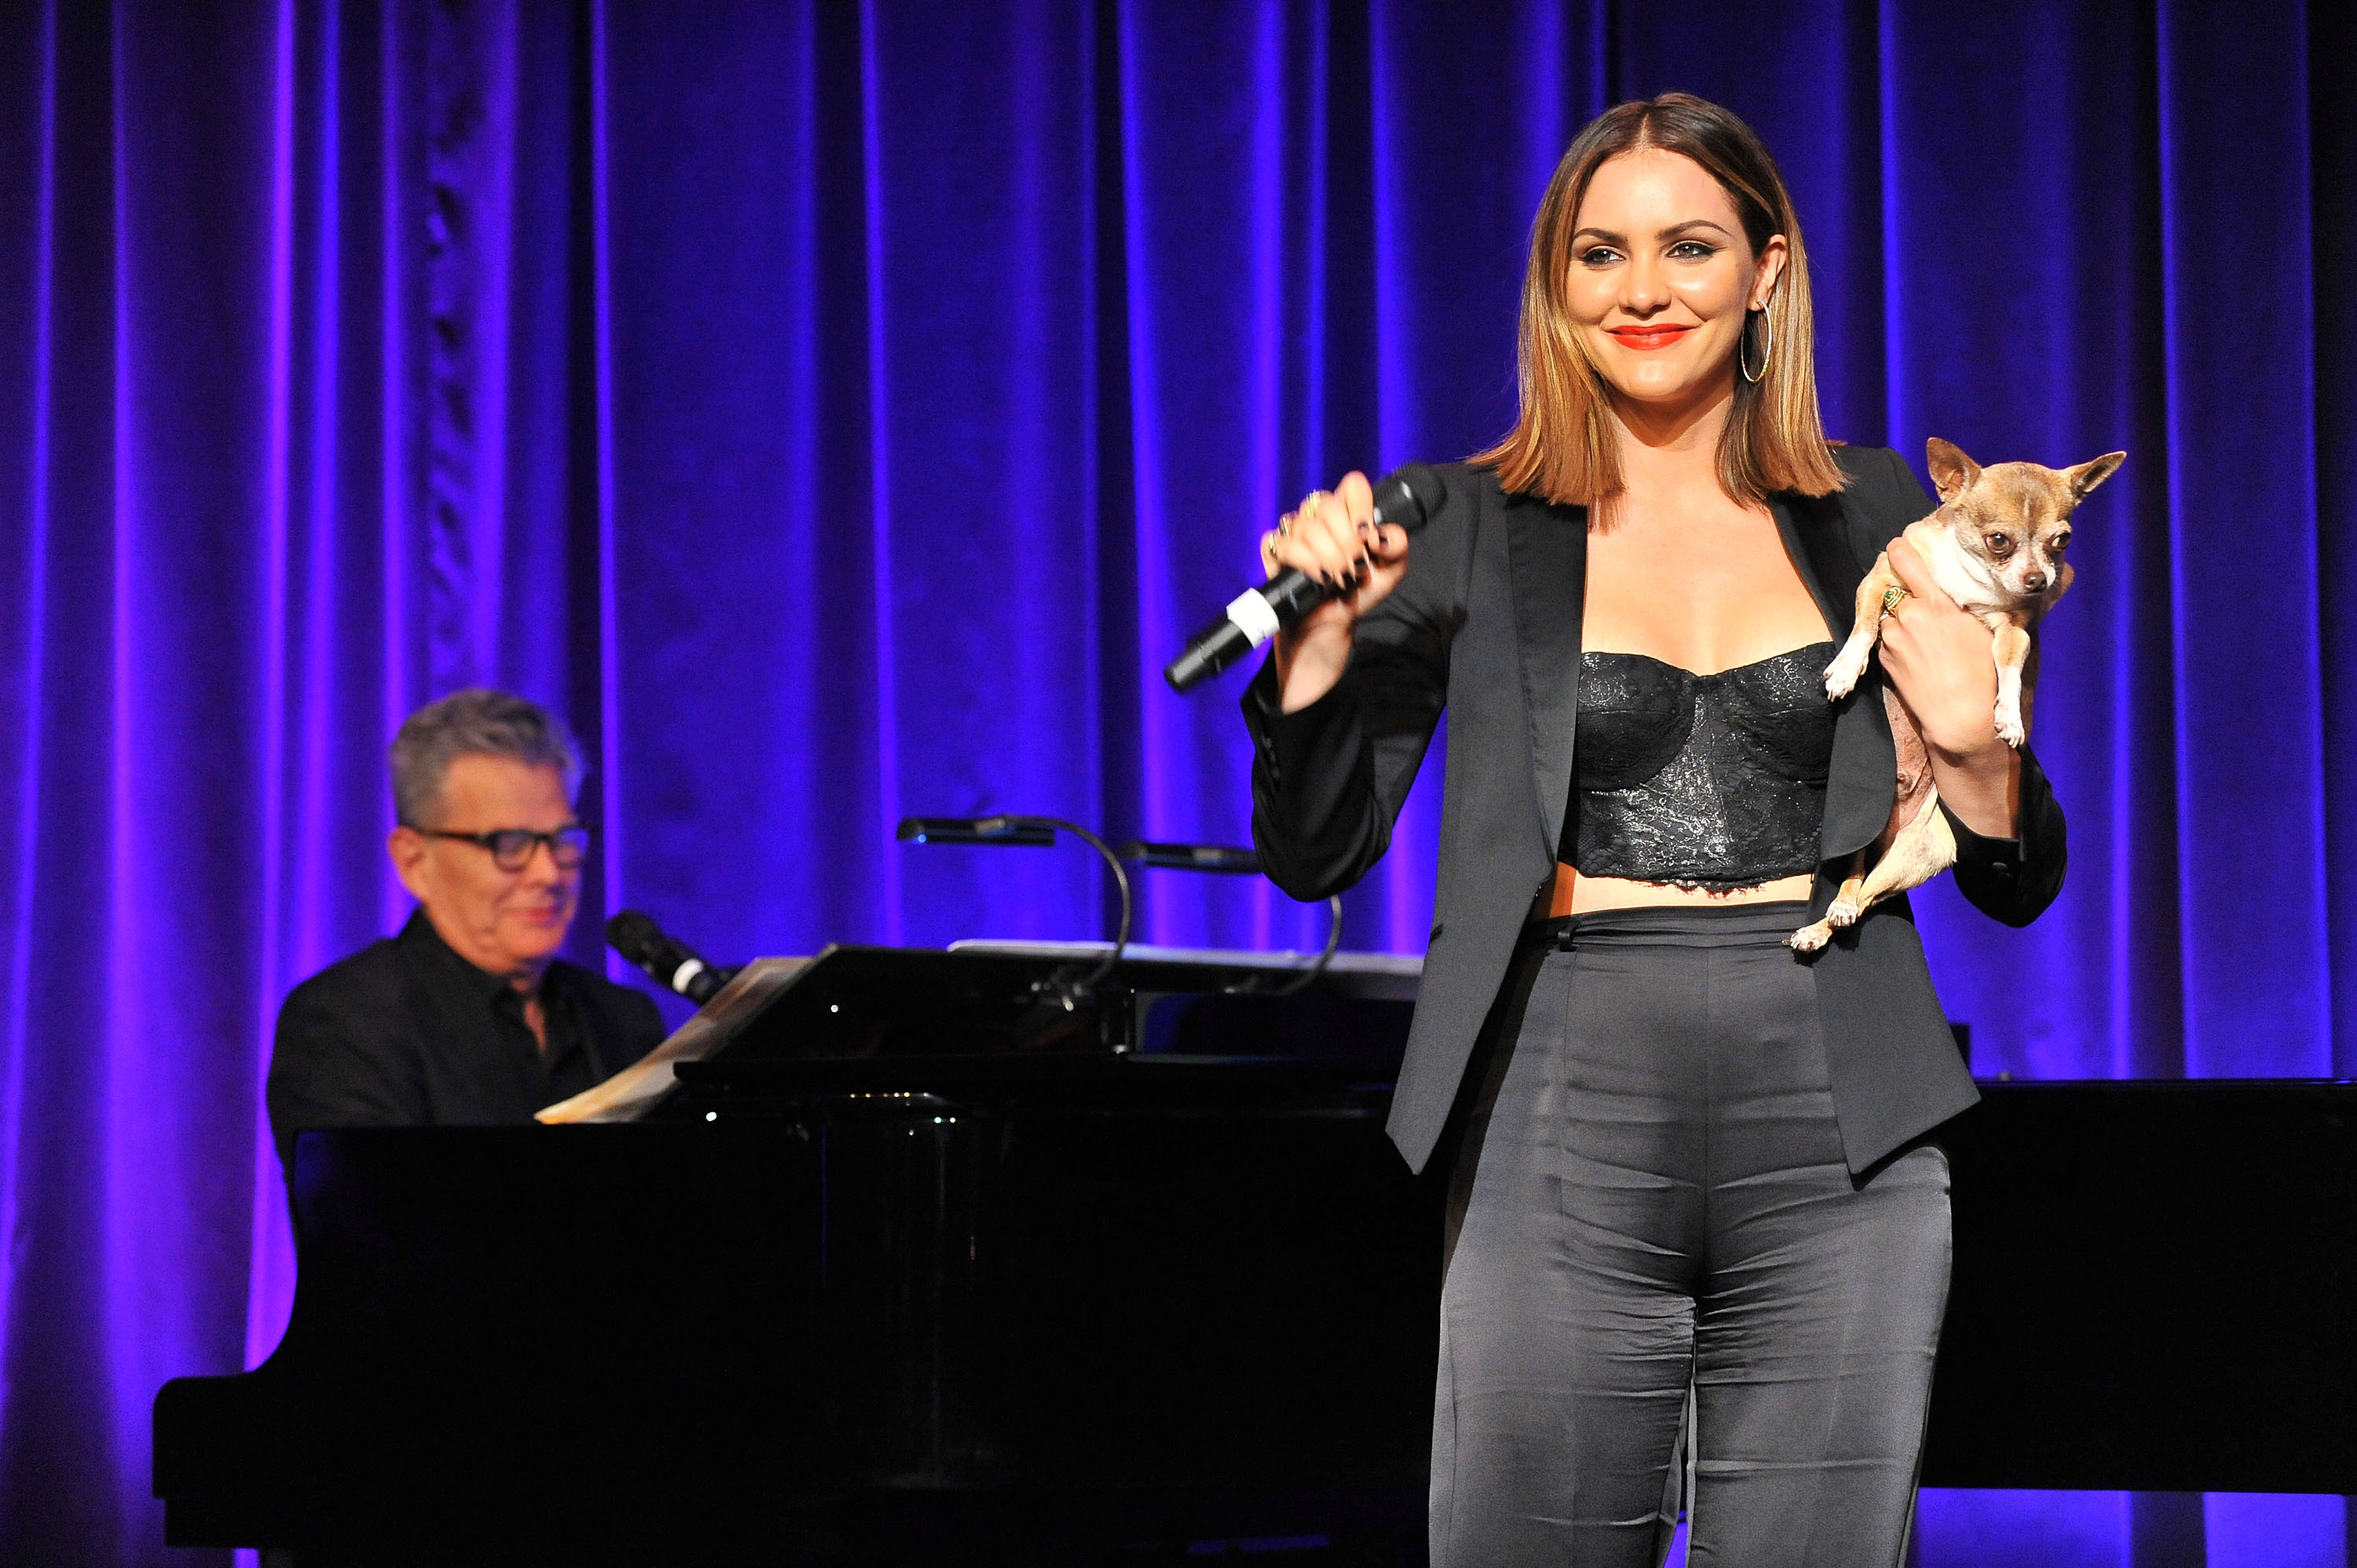 katherine mcphee, david foster, wildaid